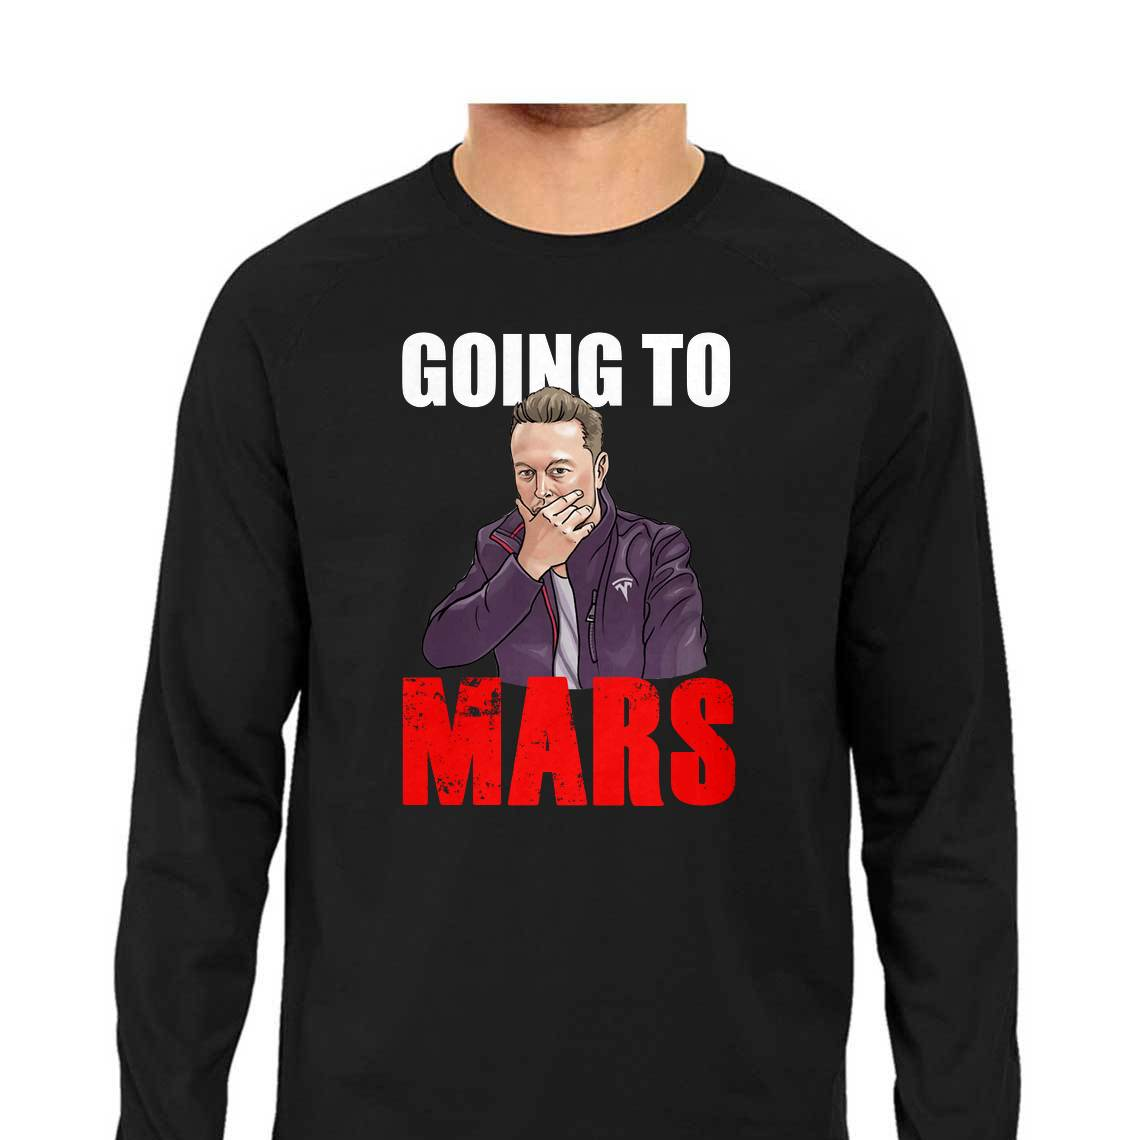 Elon Musk - Going to Mars Full Sleeve T-Shirt